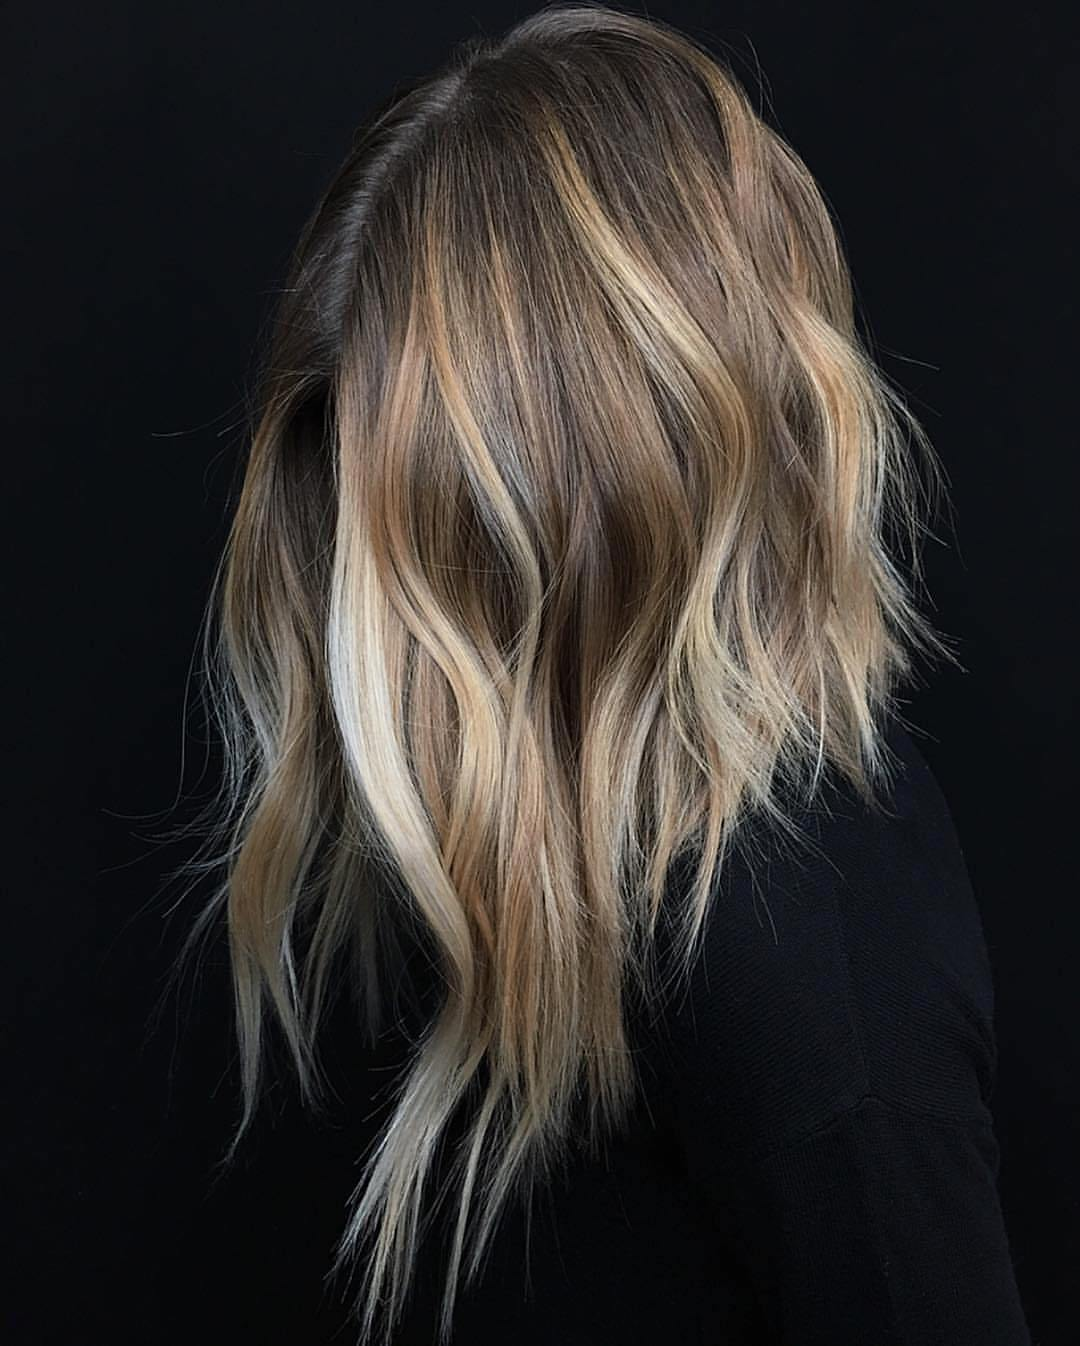 Light Brown Hair with Blonde and Beige Highlights